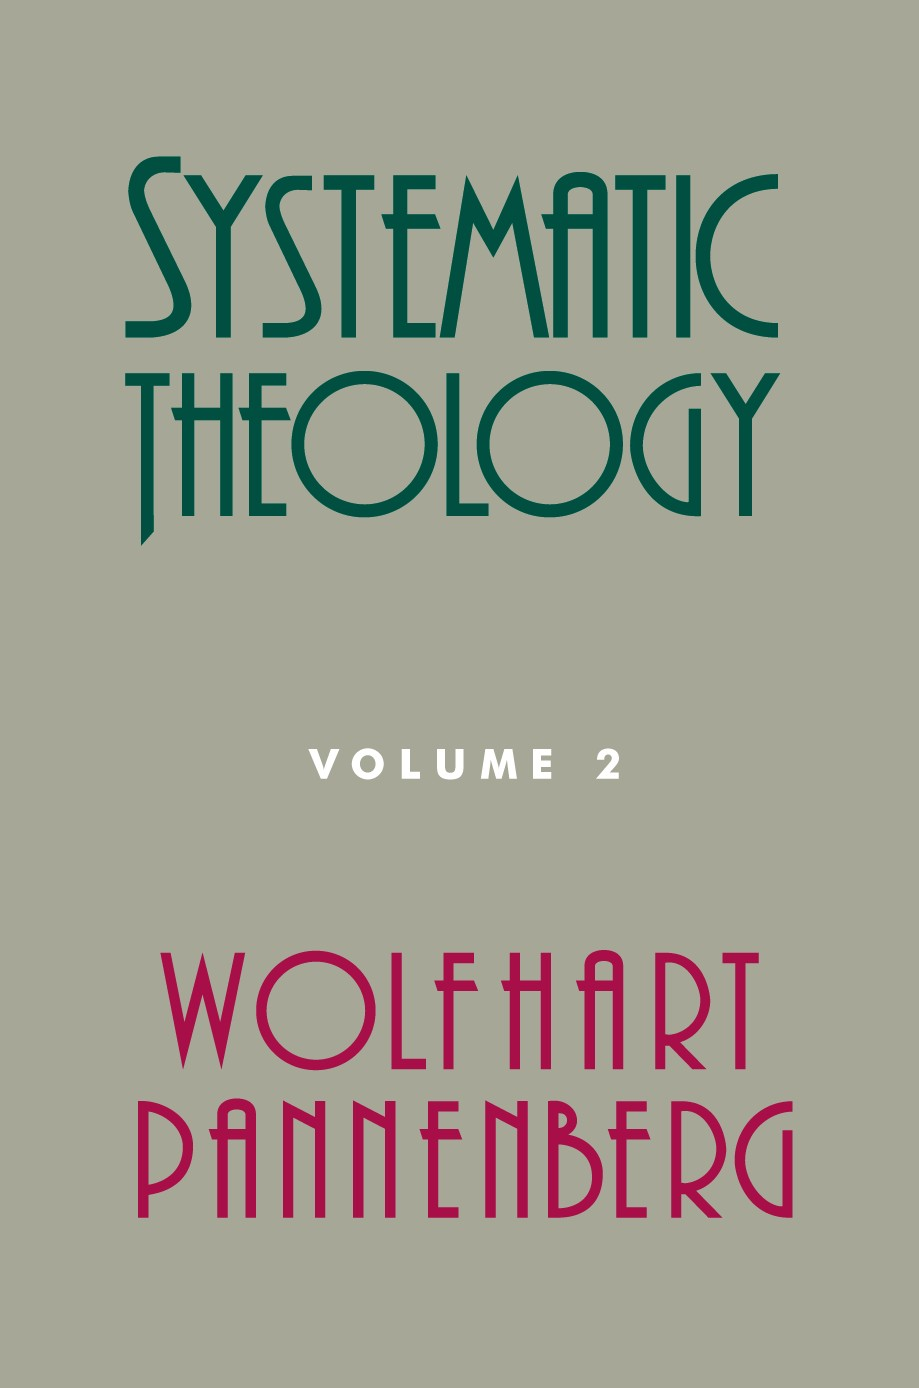 essay on systematic theology The title of his essay, systematic theology as analytic theology, gives a clear indication that he wants to go further than crisp and rauser and look to the methods of analytical philosophy to come to the rescue of the mishmash that is contemporary systematic theology.